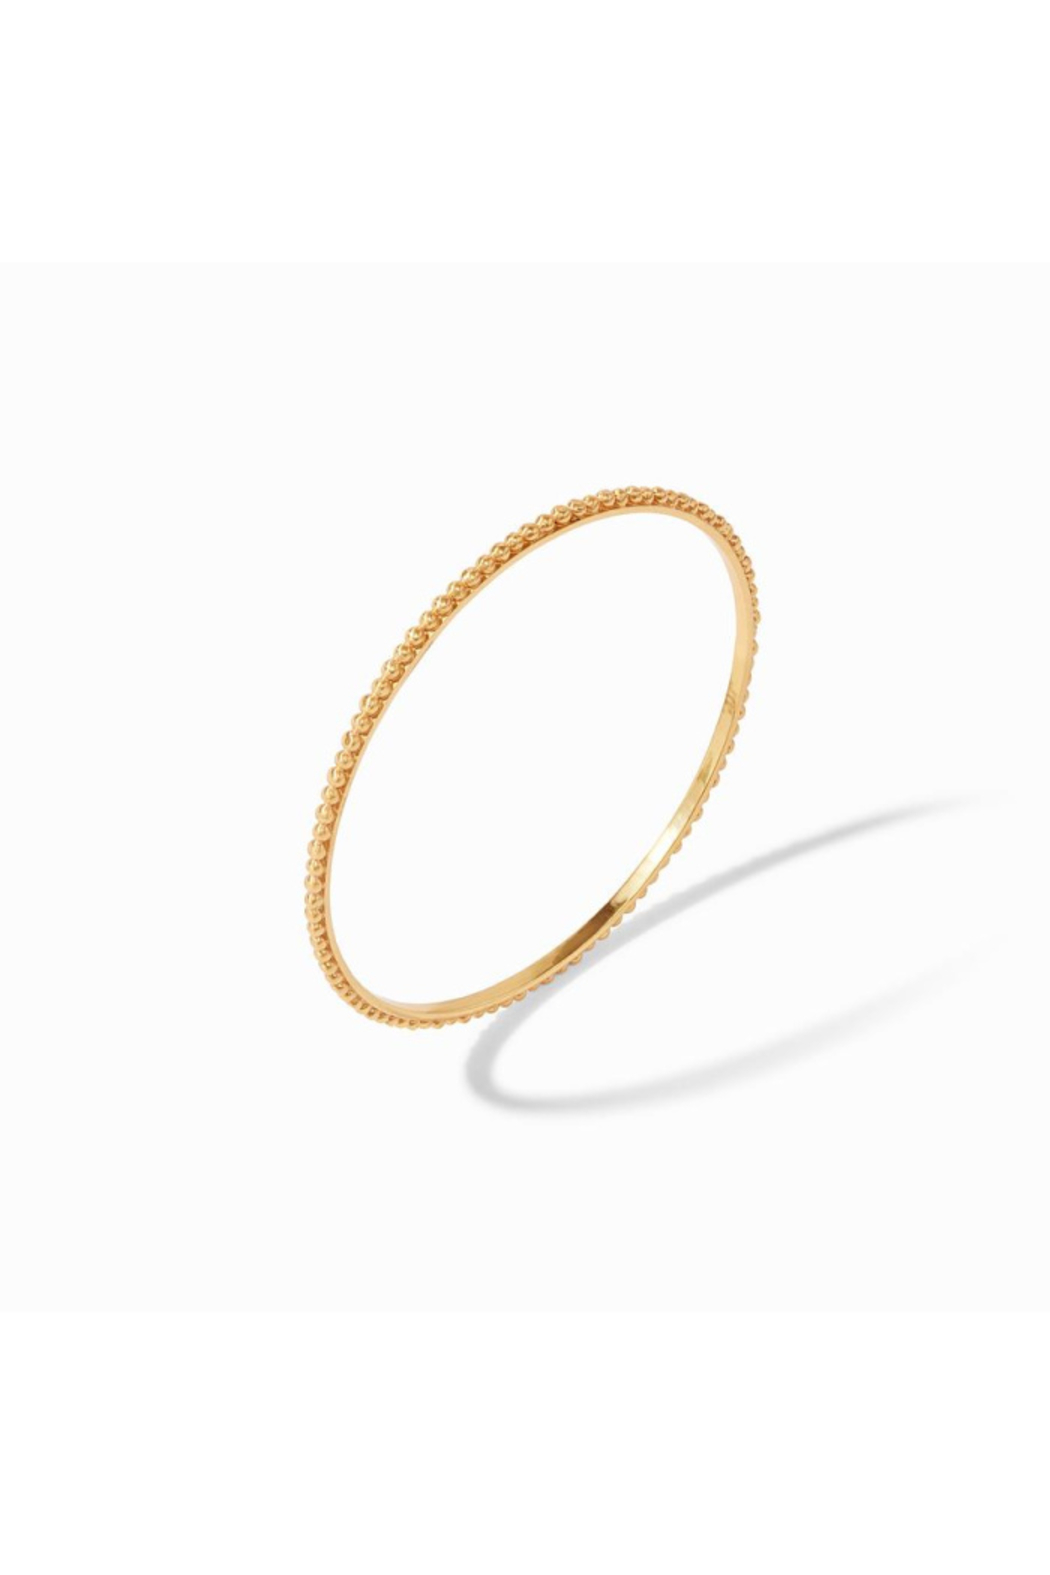 Julie Vos Colette Bead Bangle Gold Medium - Front Full Image